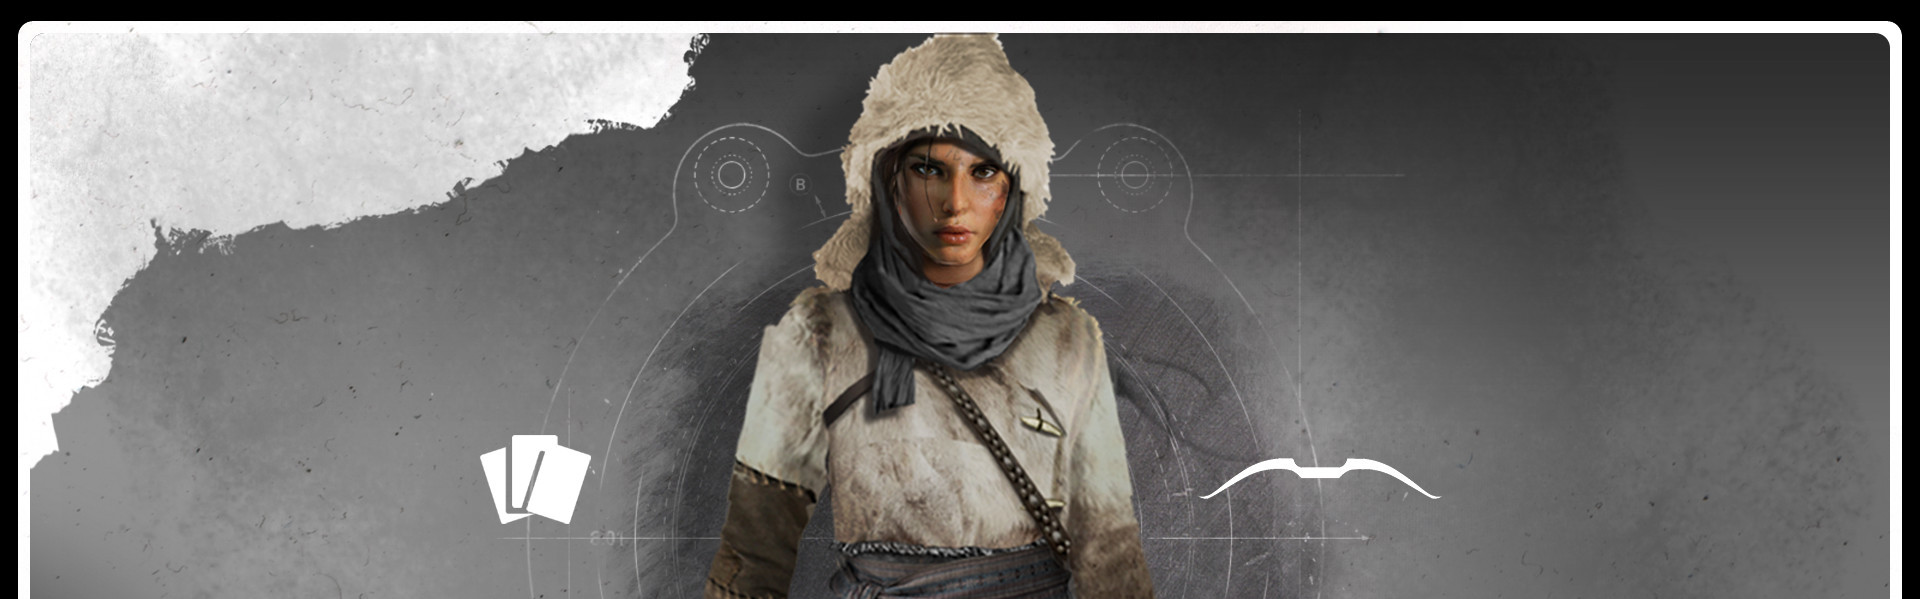 Rise of the Tomb Raider - The Sparrowhawk Pack (DLC) Steam Key GLOBAL